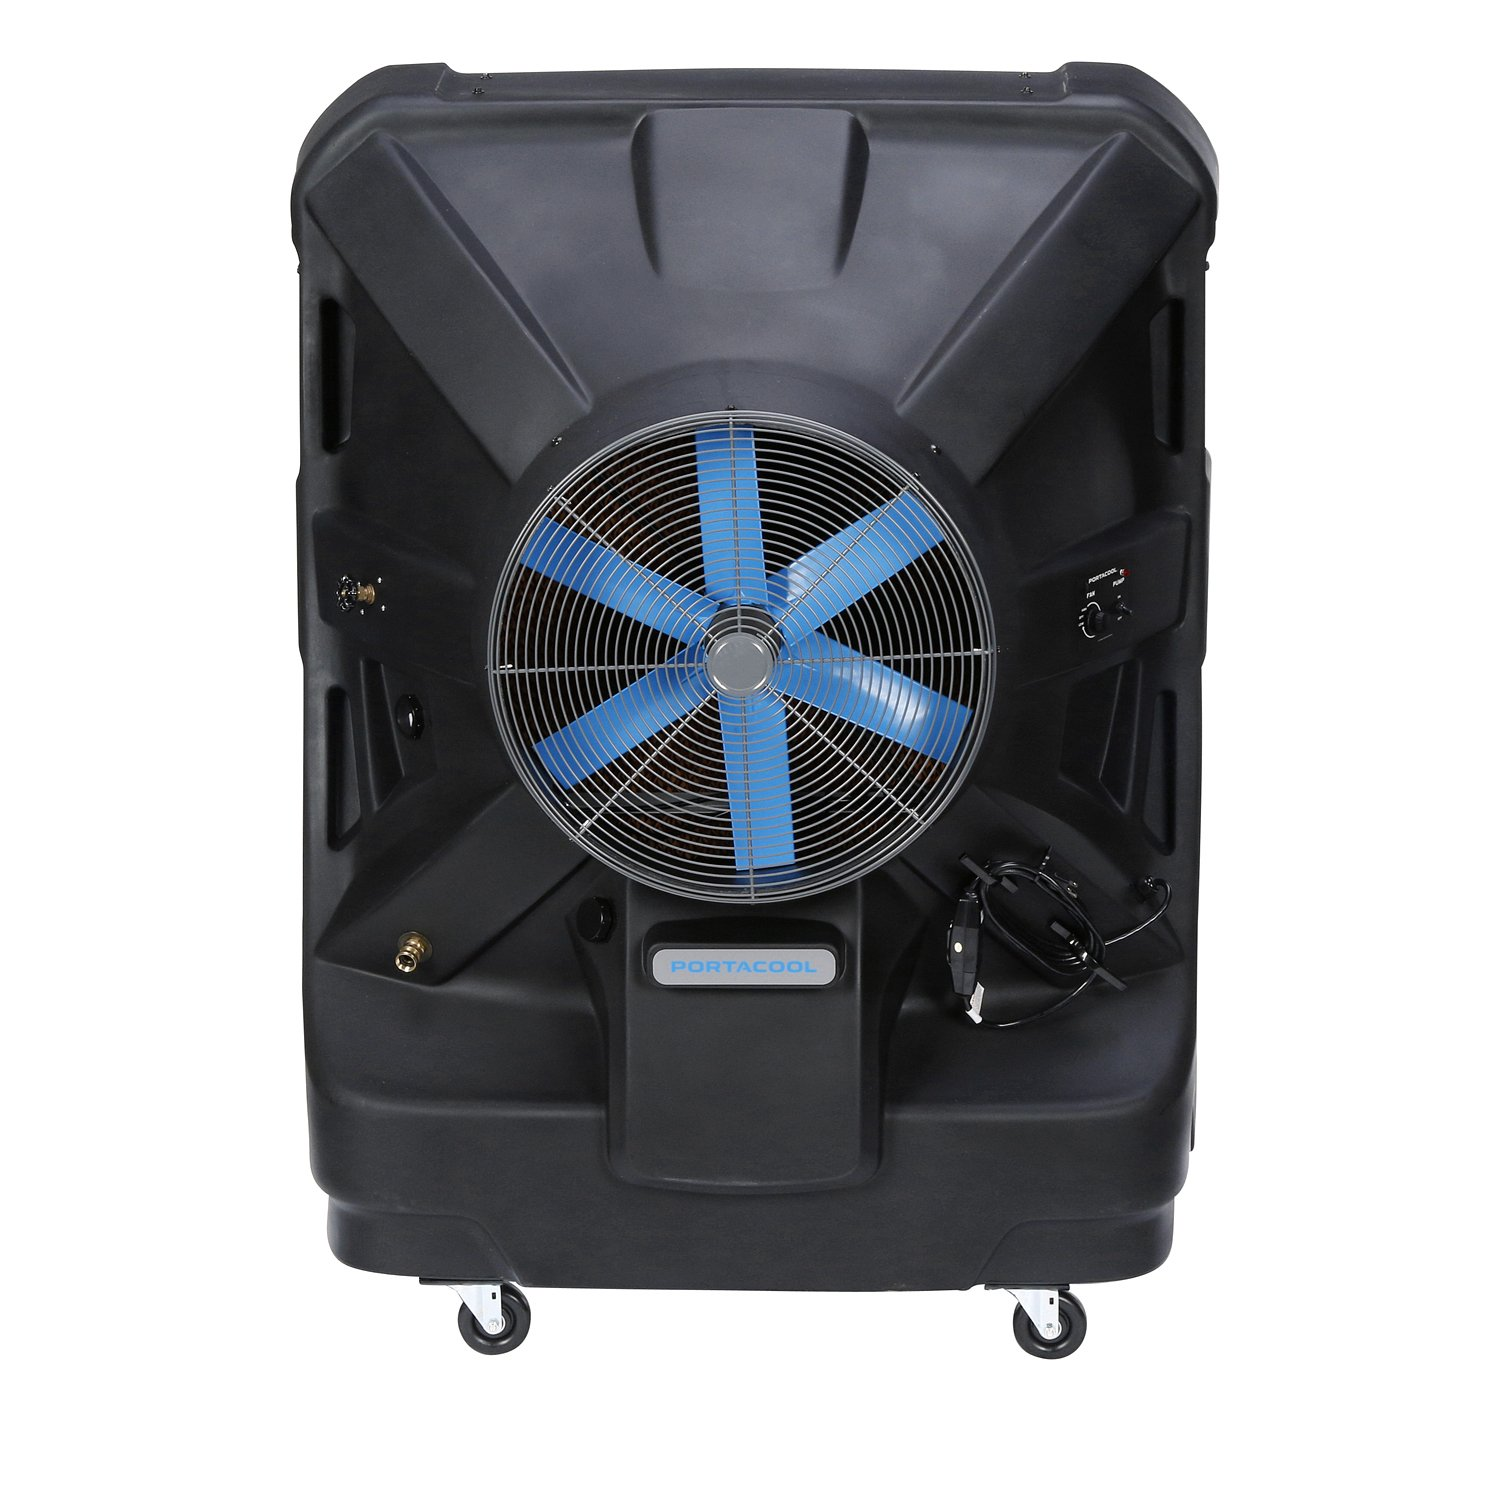 Portacool PACJS2501A1 250 Jetstream Portable Evaporative Cooler